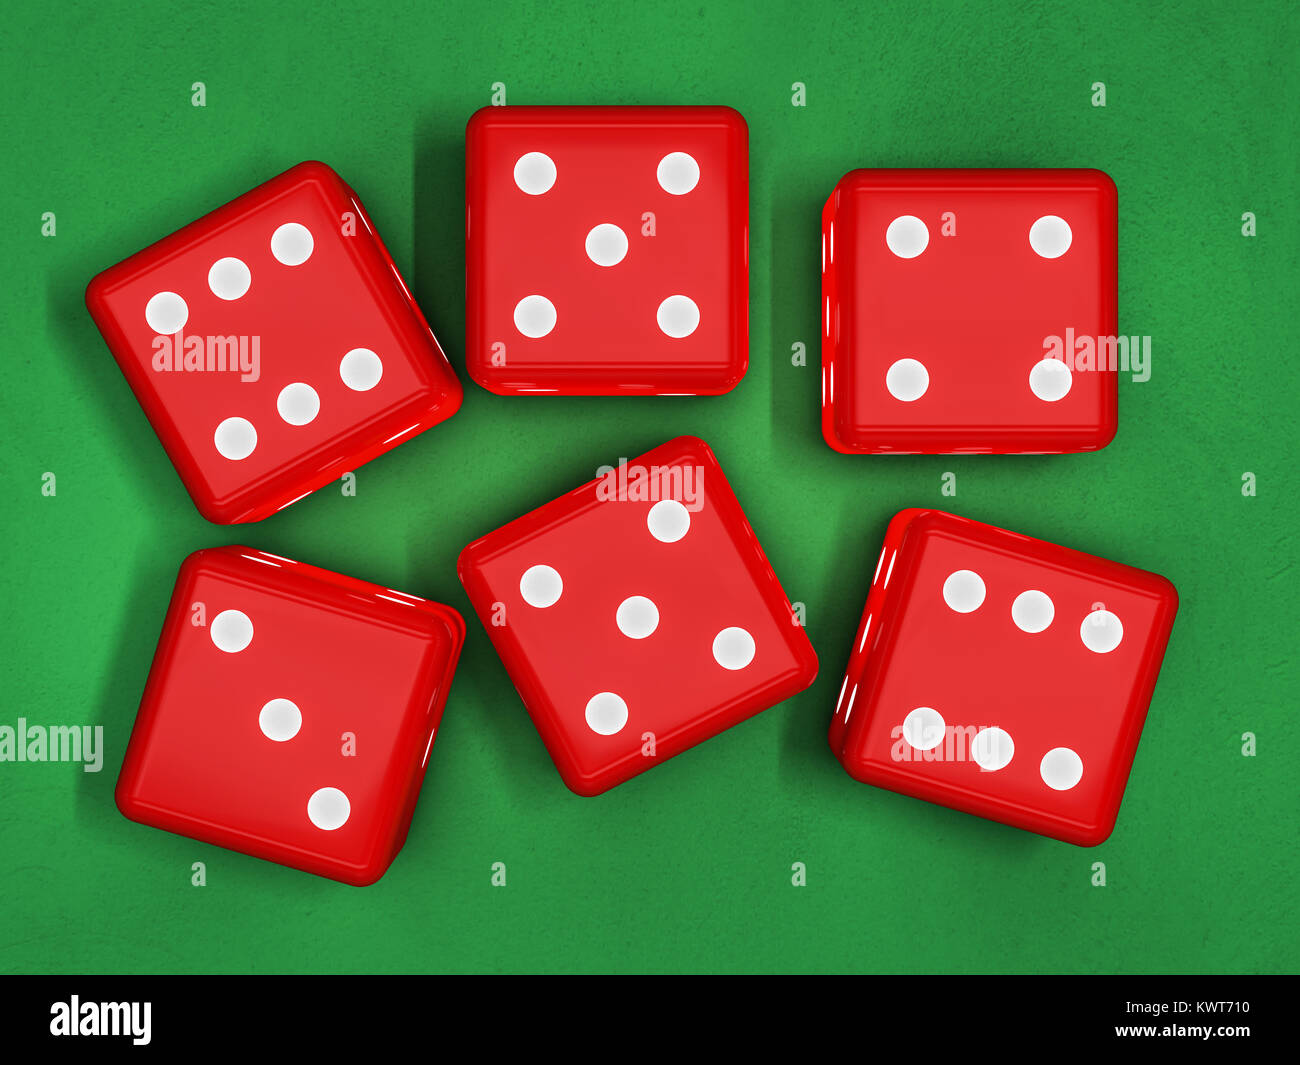 Casino dice on table 3d rendering - Stock Image